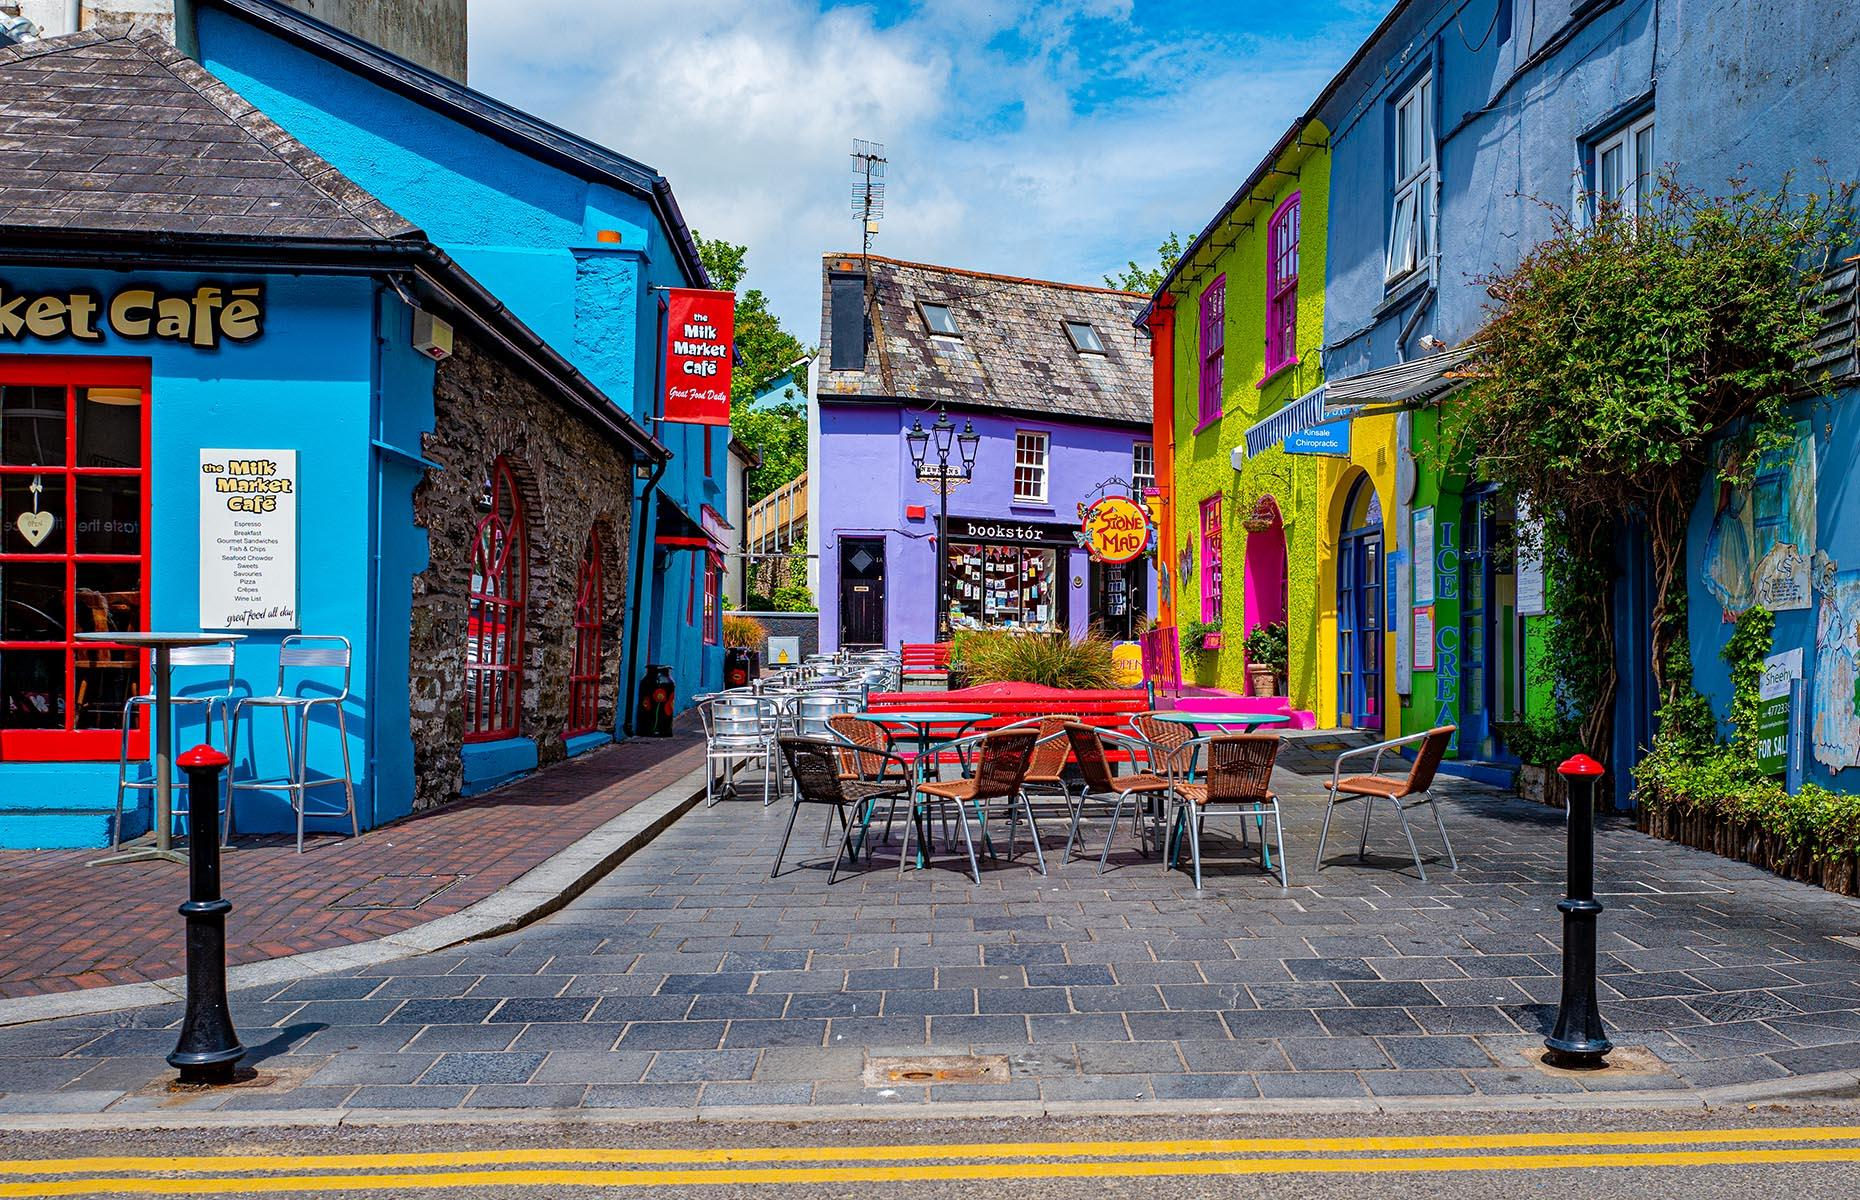 Slide 36 of 41: The Irish coastal town of Kinsale is famed for its exceptional cuisine which showcases the best of the bounty from the Celtic Sea. Besides the fanciful food on offer, Kinsale is also known for its quirky streets which are flamboyantly painted every color of the rainbow.